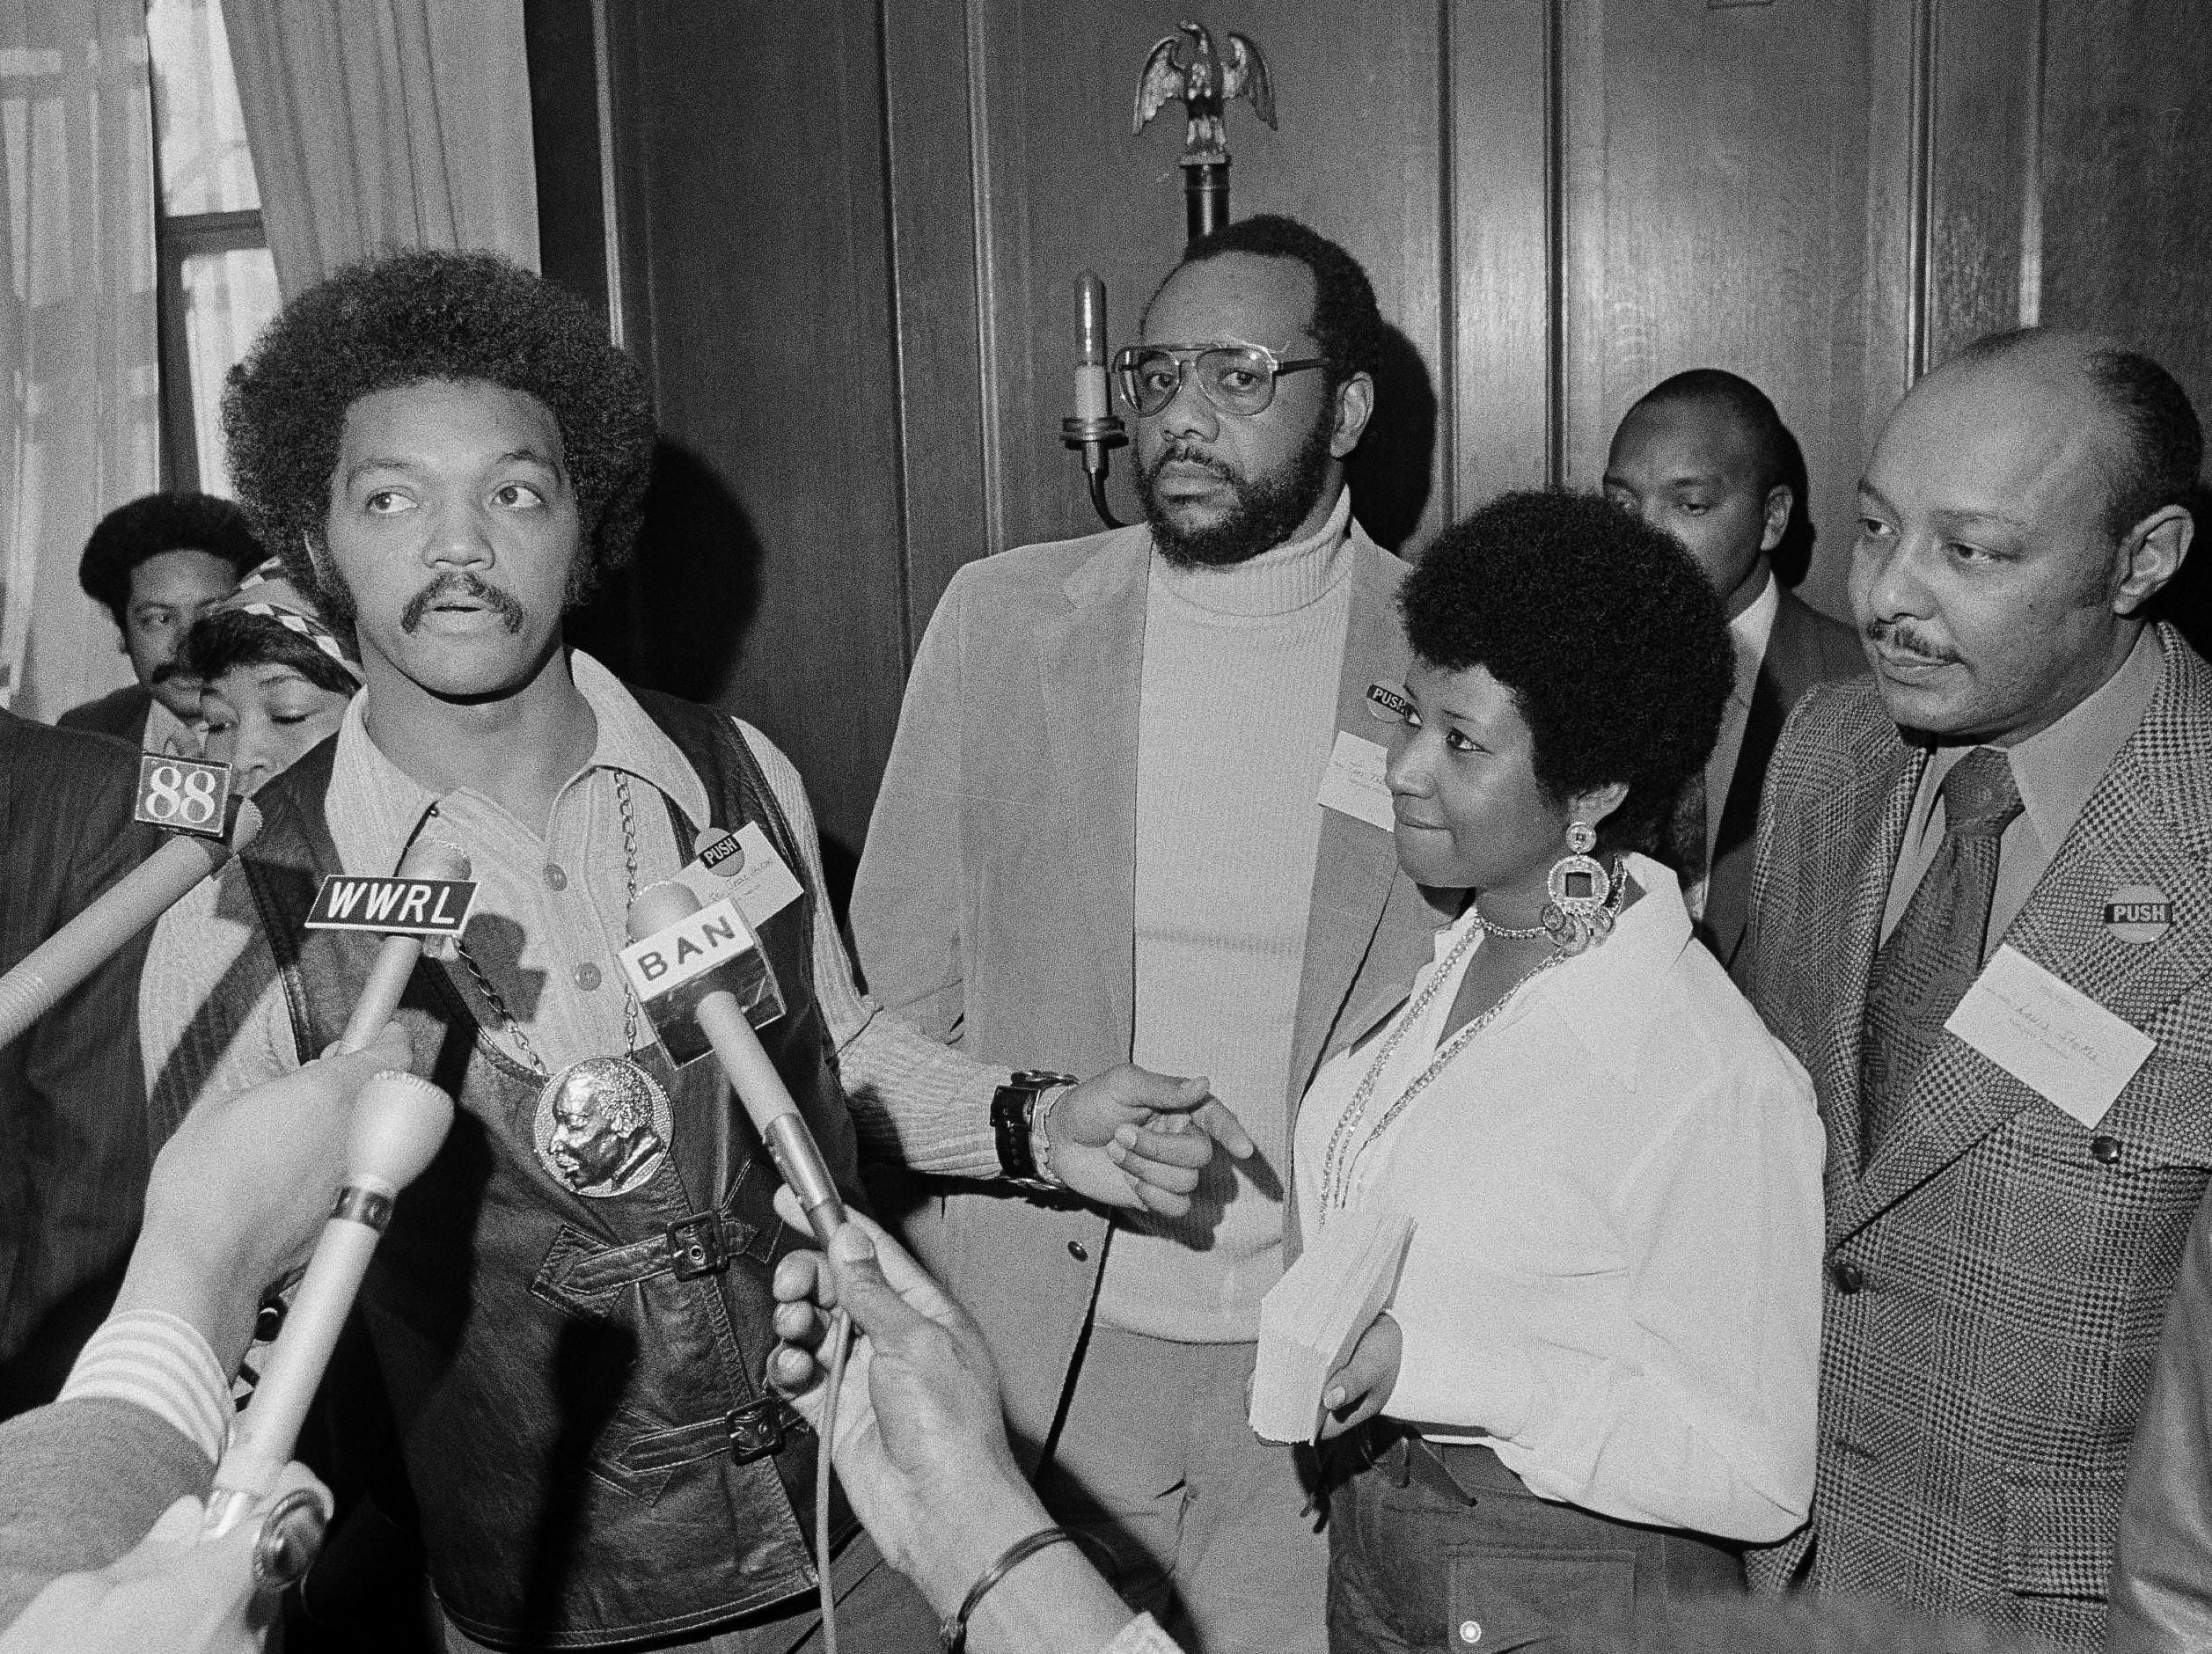 This March 26, 1972 file photo shows the Rev. Jesse Jackson speaking to reporters at the Operation PUSH Soul Picnic in New York as Tom Todd, vice president of PUSH, from second left, Aretha Franklin and Louis Stokes. A person close to Franklin said on Monday that the 76-year-old singer is ill. Franklin canceled planned concerts earlier this year after she was ordered by her doctor to stay off the road and rest up. (AP Photo/Jim Wells, File) ORG XMIT: NYET901